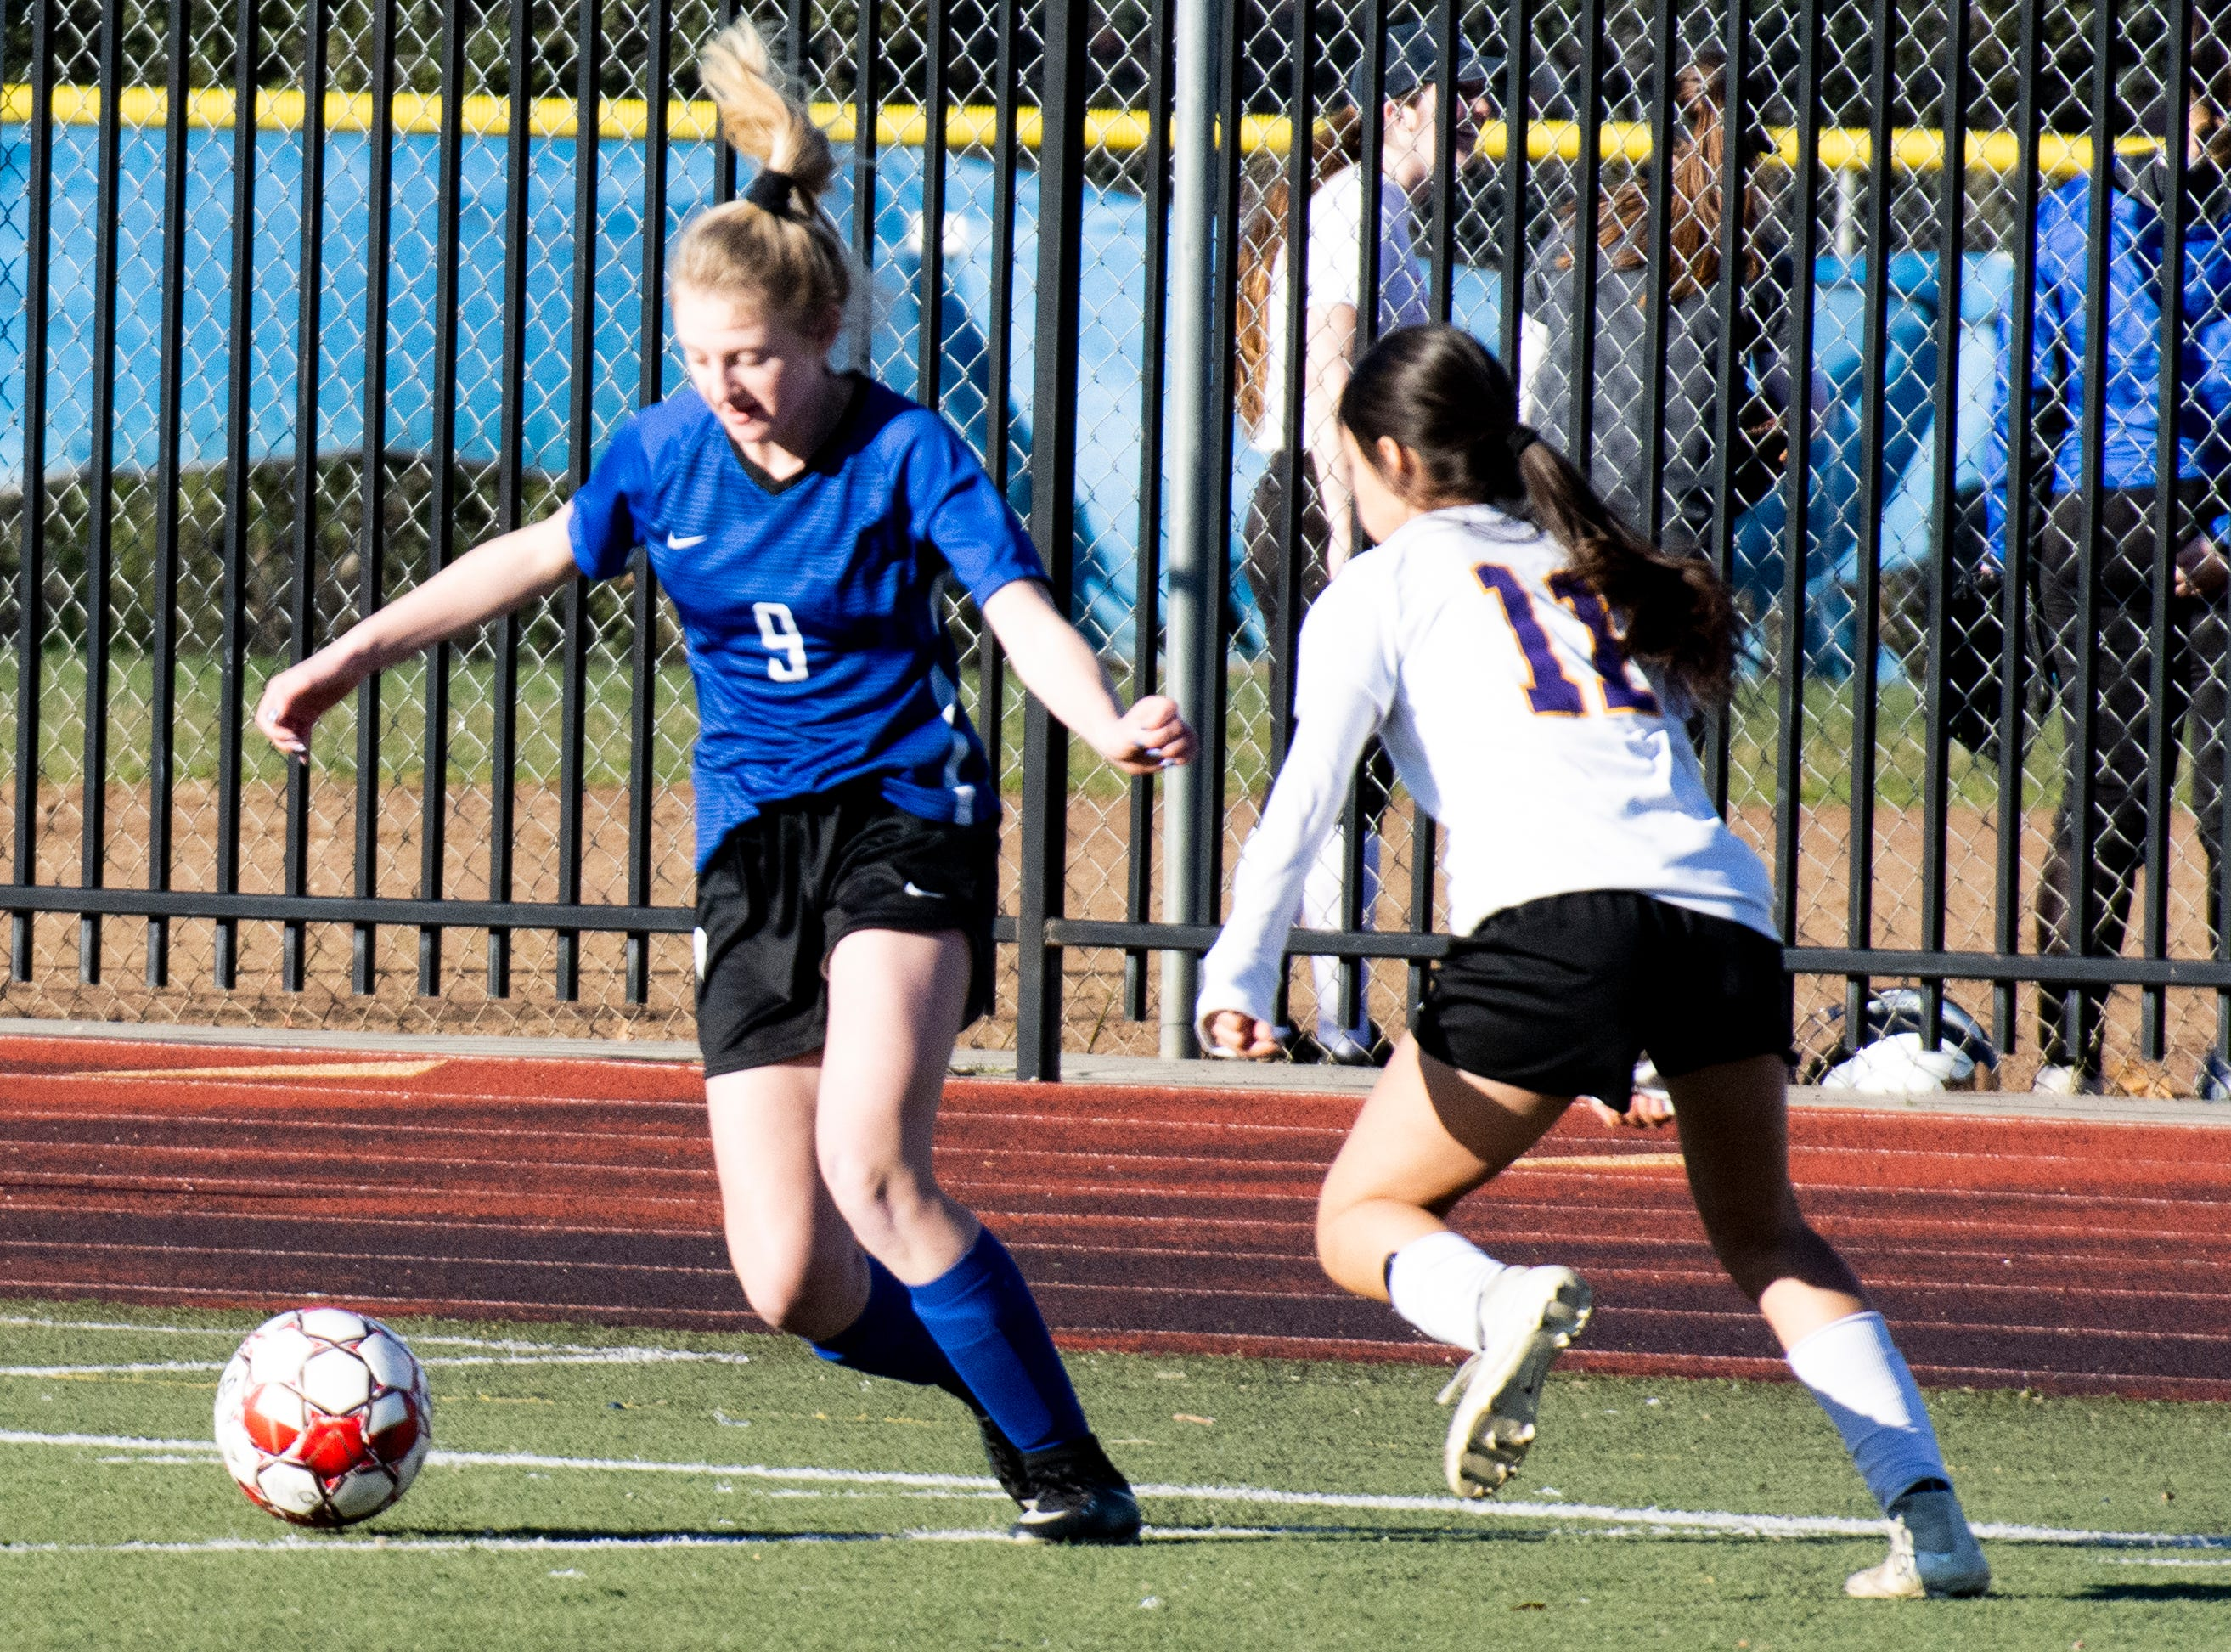 U-Prep freshman Isabel Lendman eludes Live Oak's Bella Barajas during the Panthers' 6-0 win in a Division II Northern Section semifinal on Thursday, Feb. 21.